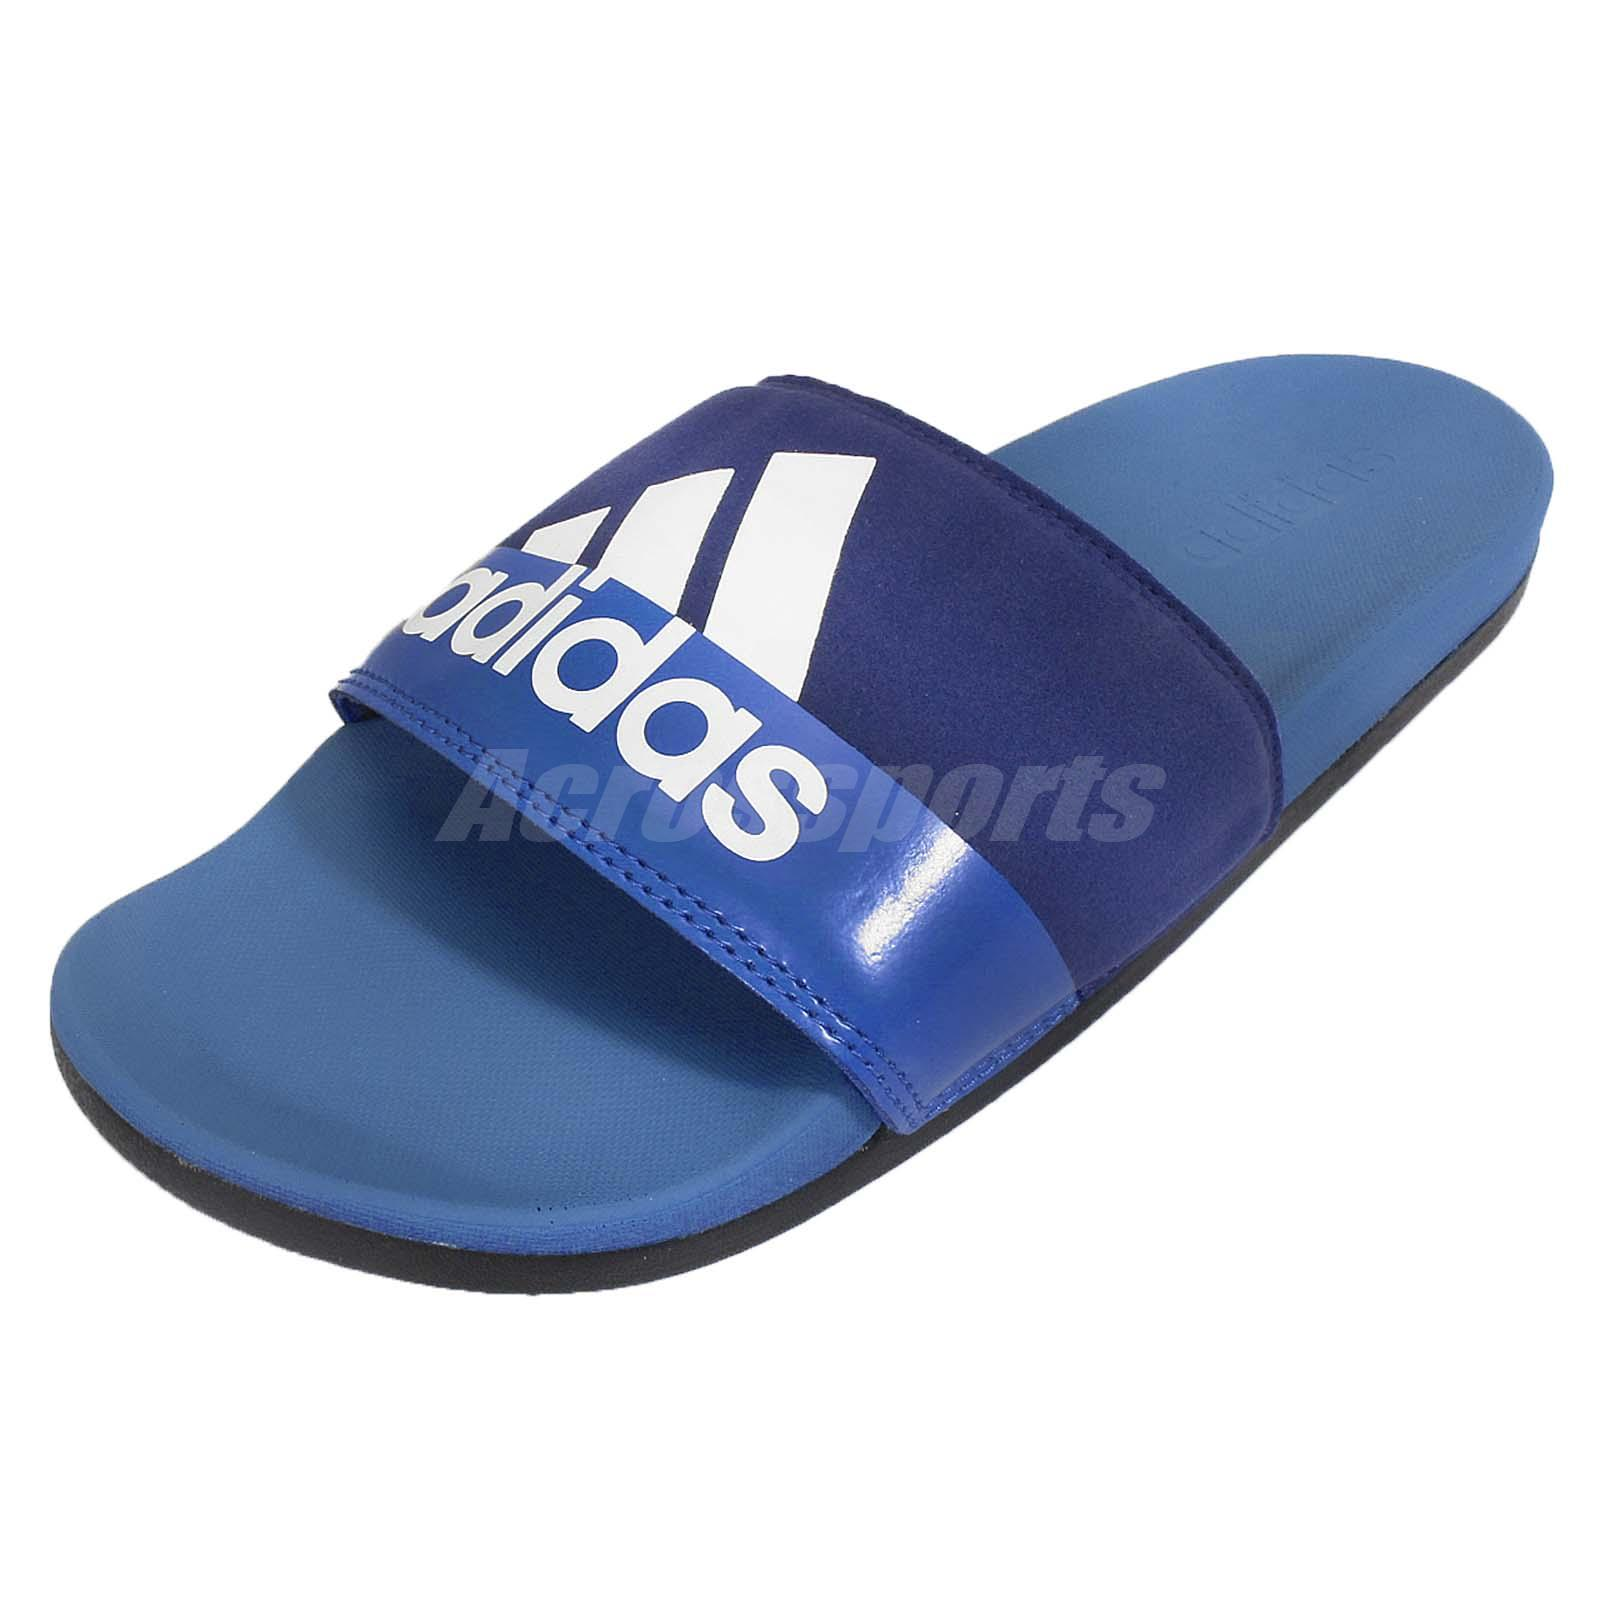 adidas new slippers